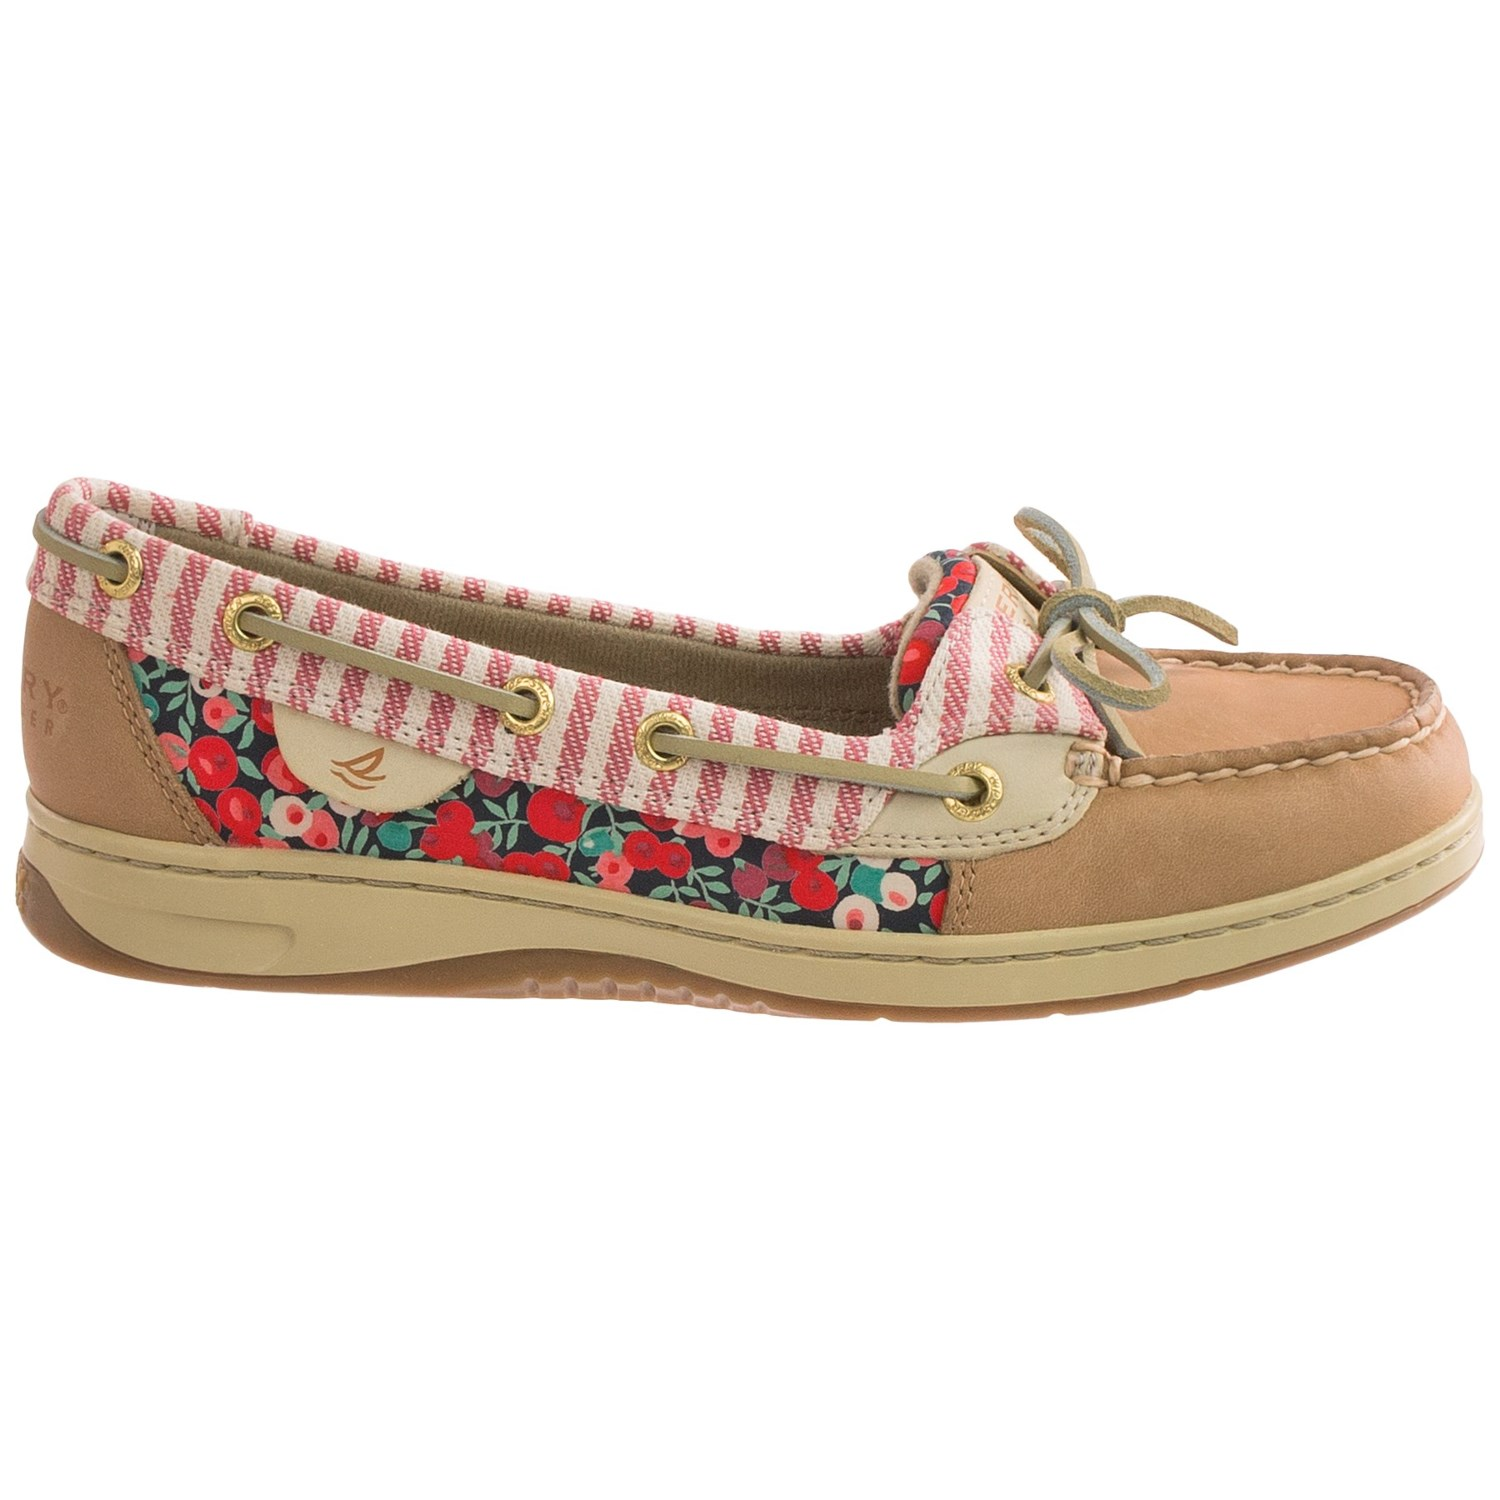 sperry single girls Shop the largest selection of sperry at the official site boat shoes, sandals, loafers, deck shoes, and nautical gear for men and women since 1935.